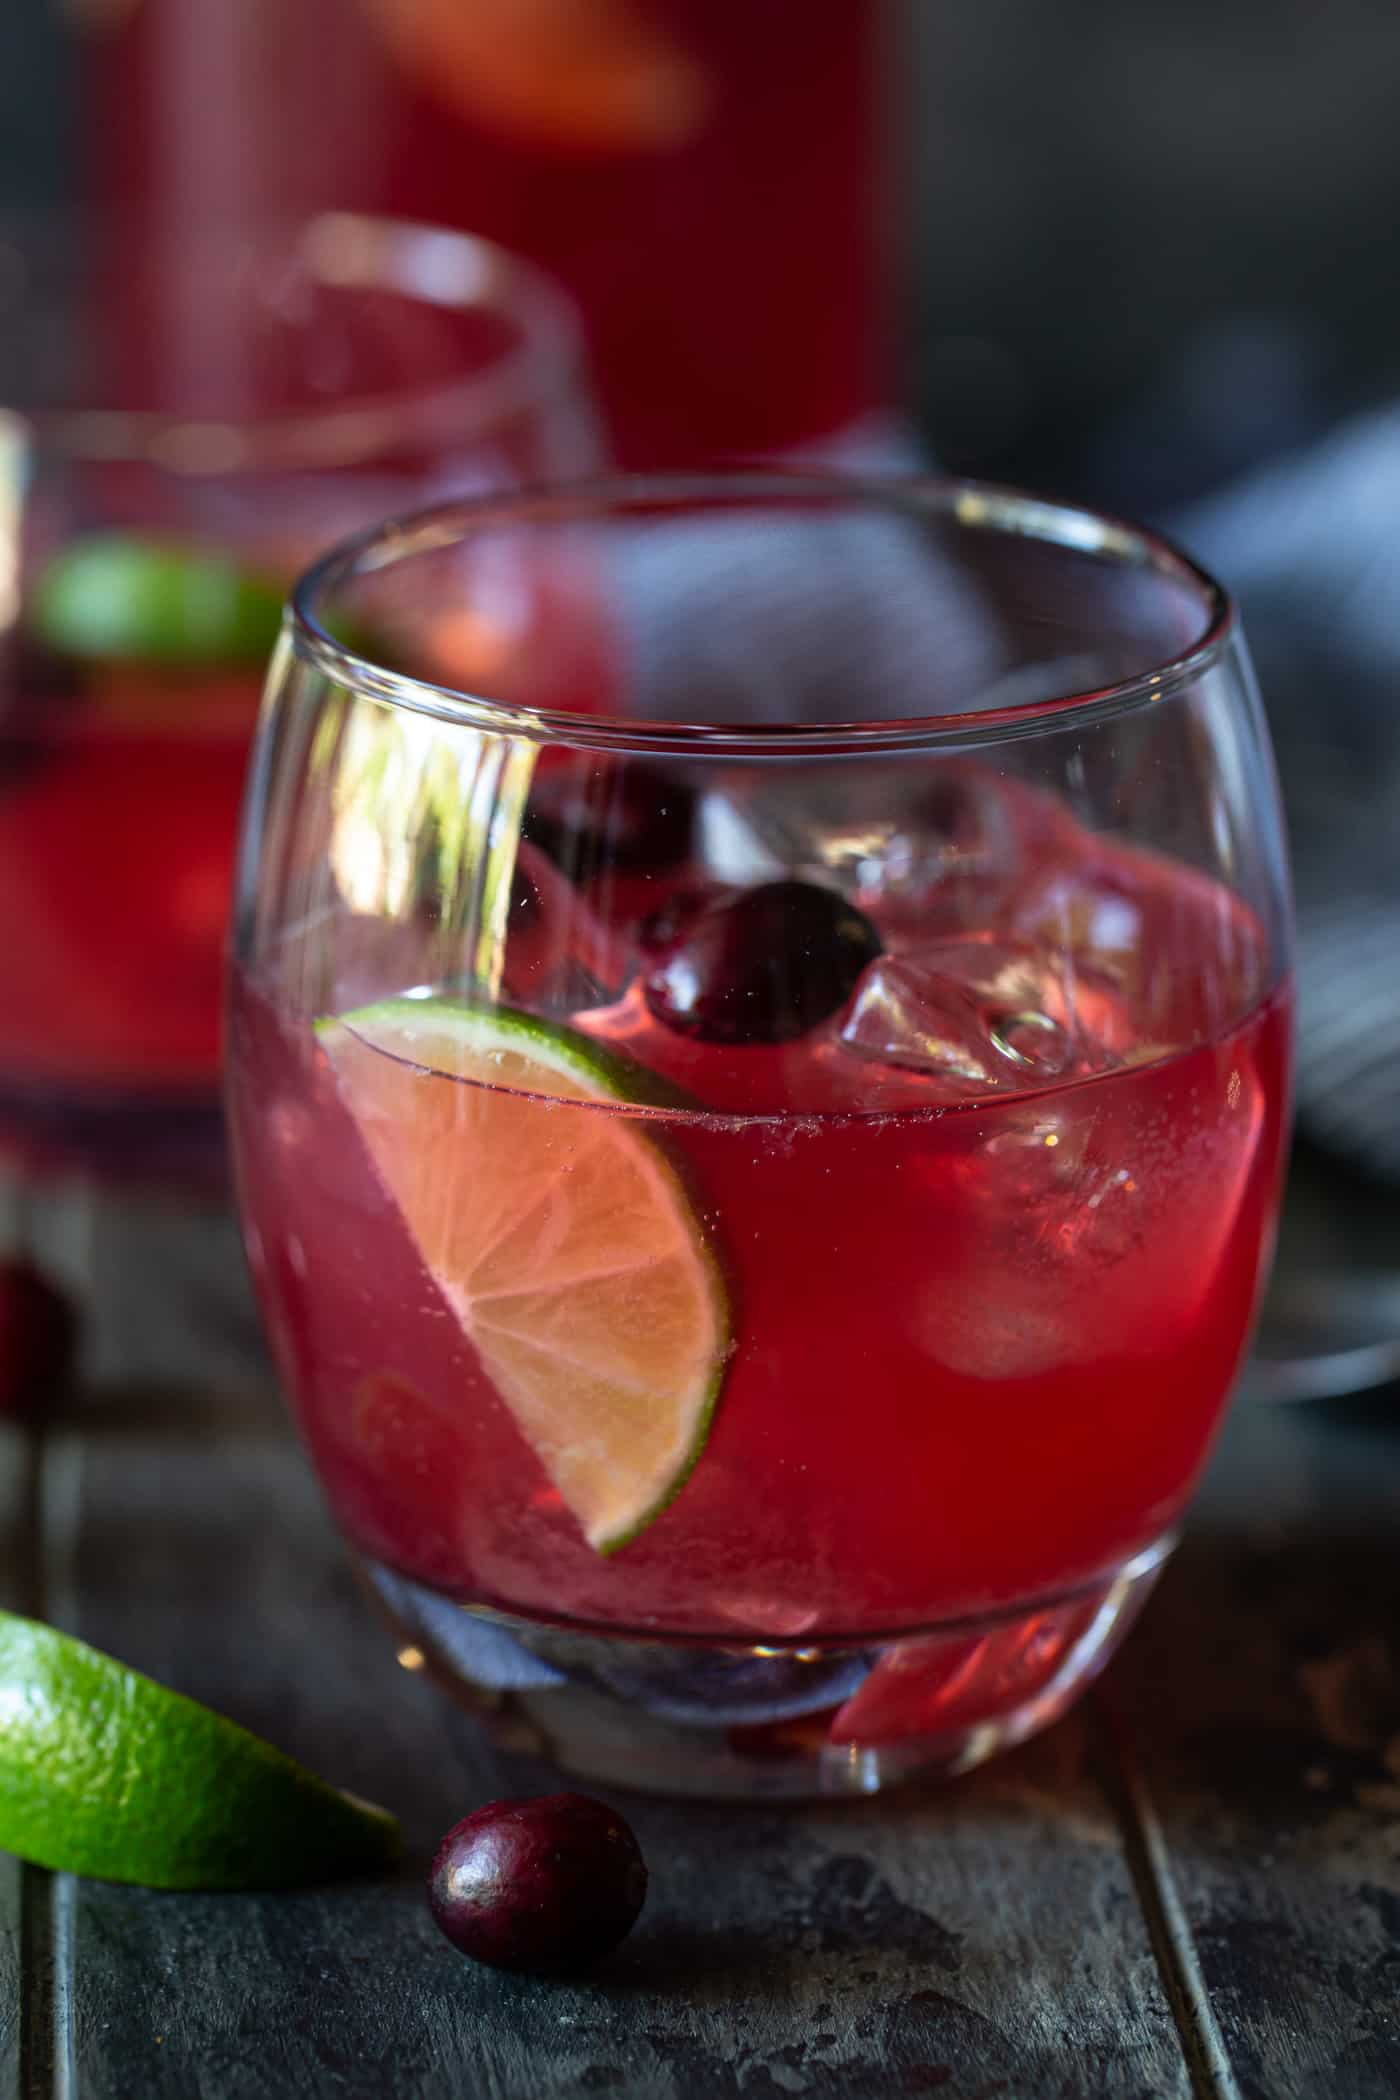 Low ball glass filled with Cranberry Vodka Party Punch. Glass is garnished with fresh cranberries and lime slices.